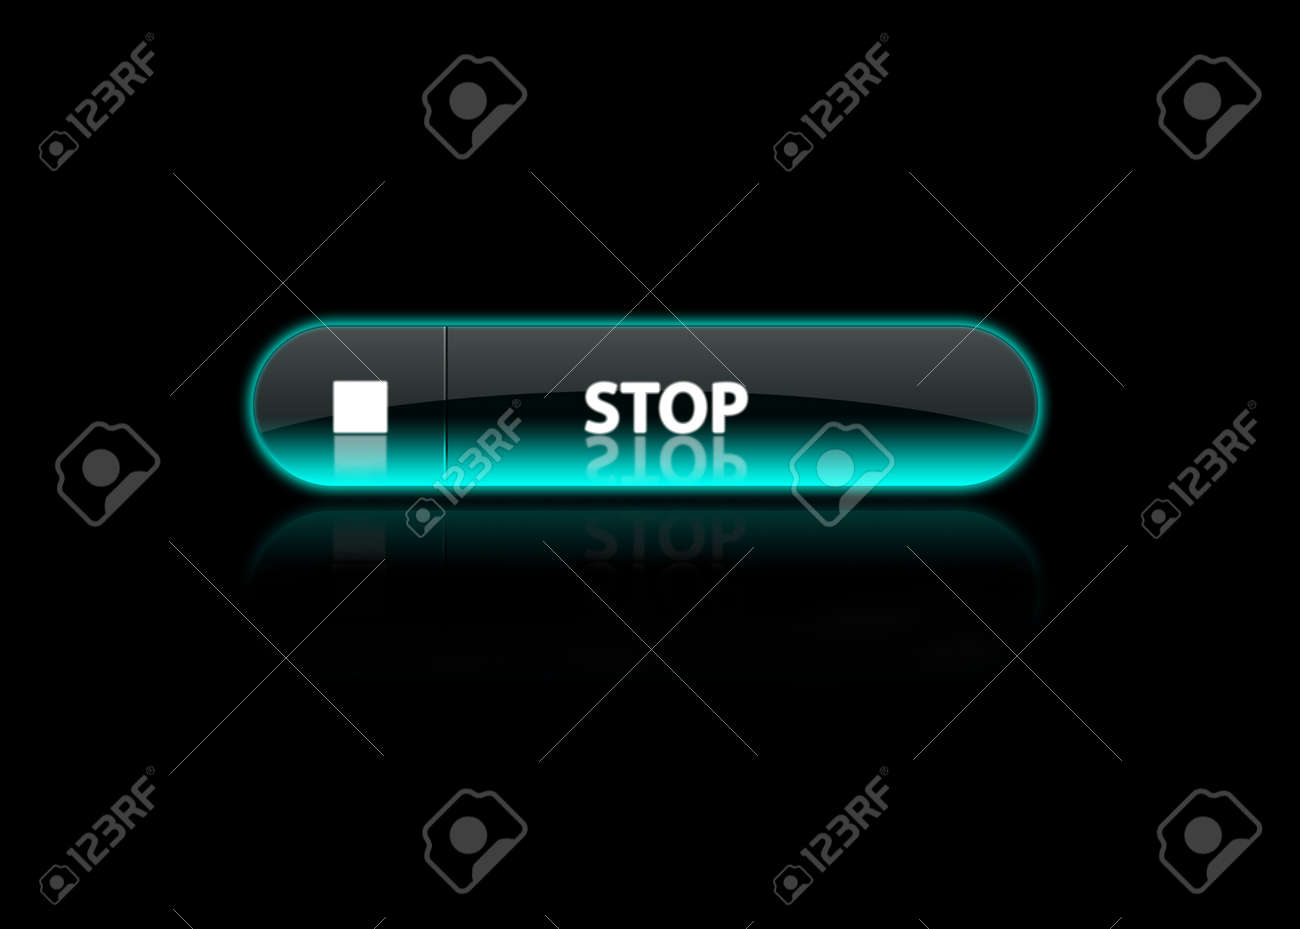 one neon blue button Stop, black background Stock Photo - 3074426